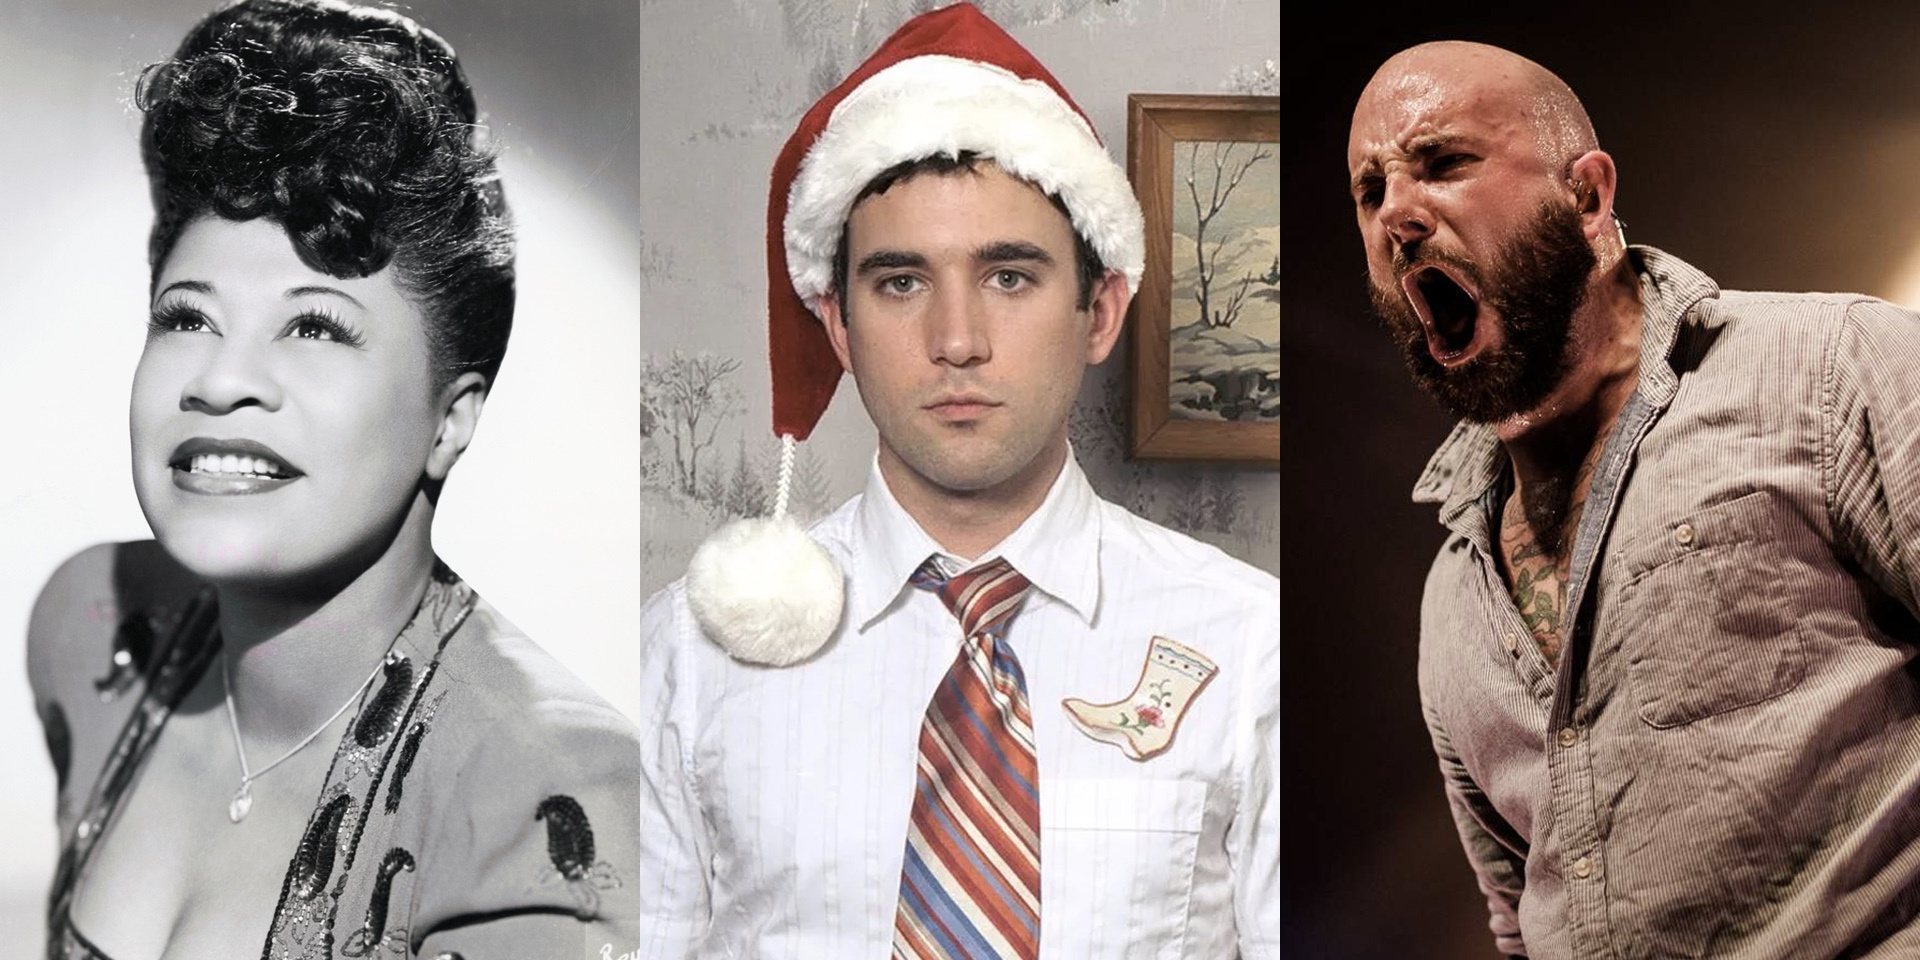 Best Christmas Albums.The Best Christmas Albums To Stream Over The Holidays